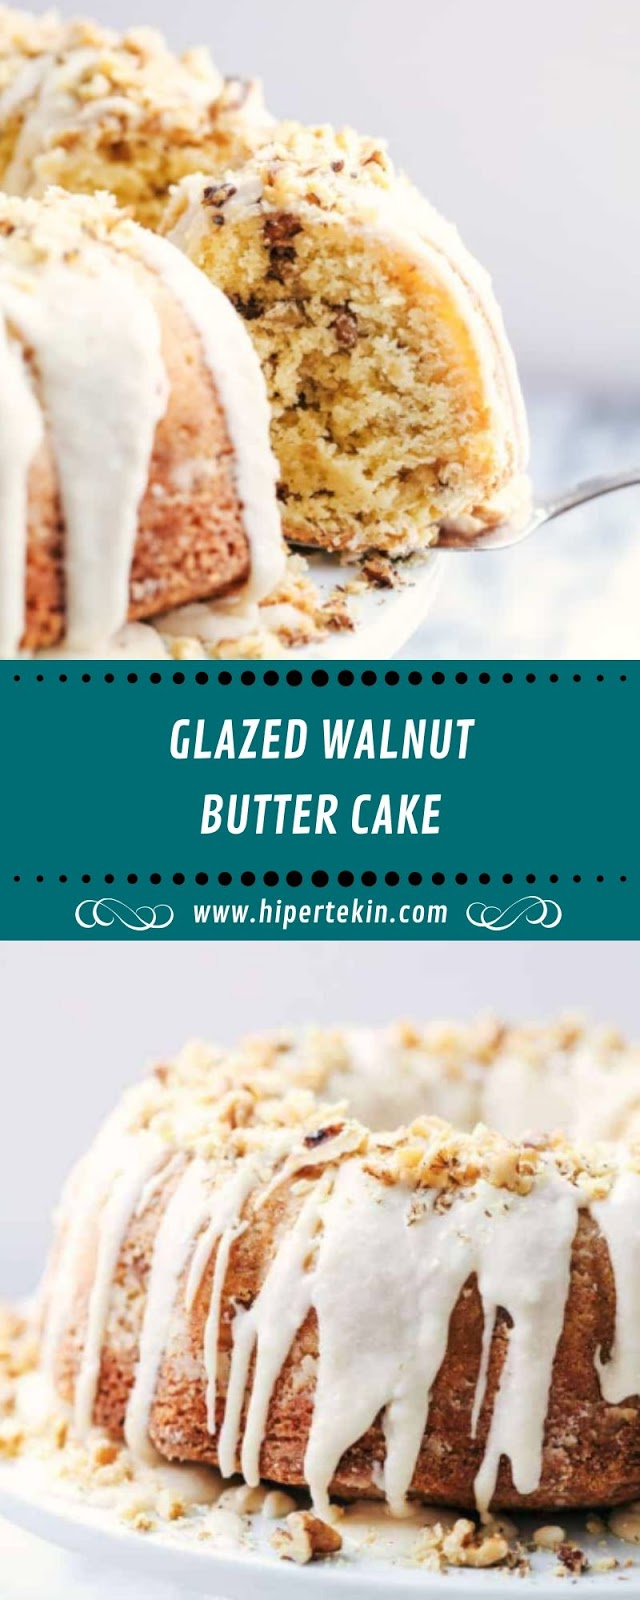 GLAZED WALNUT BUTTER CAKE